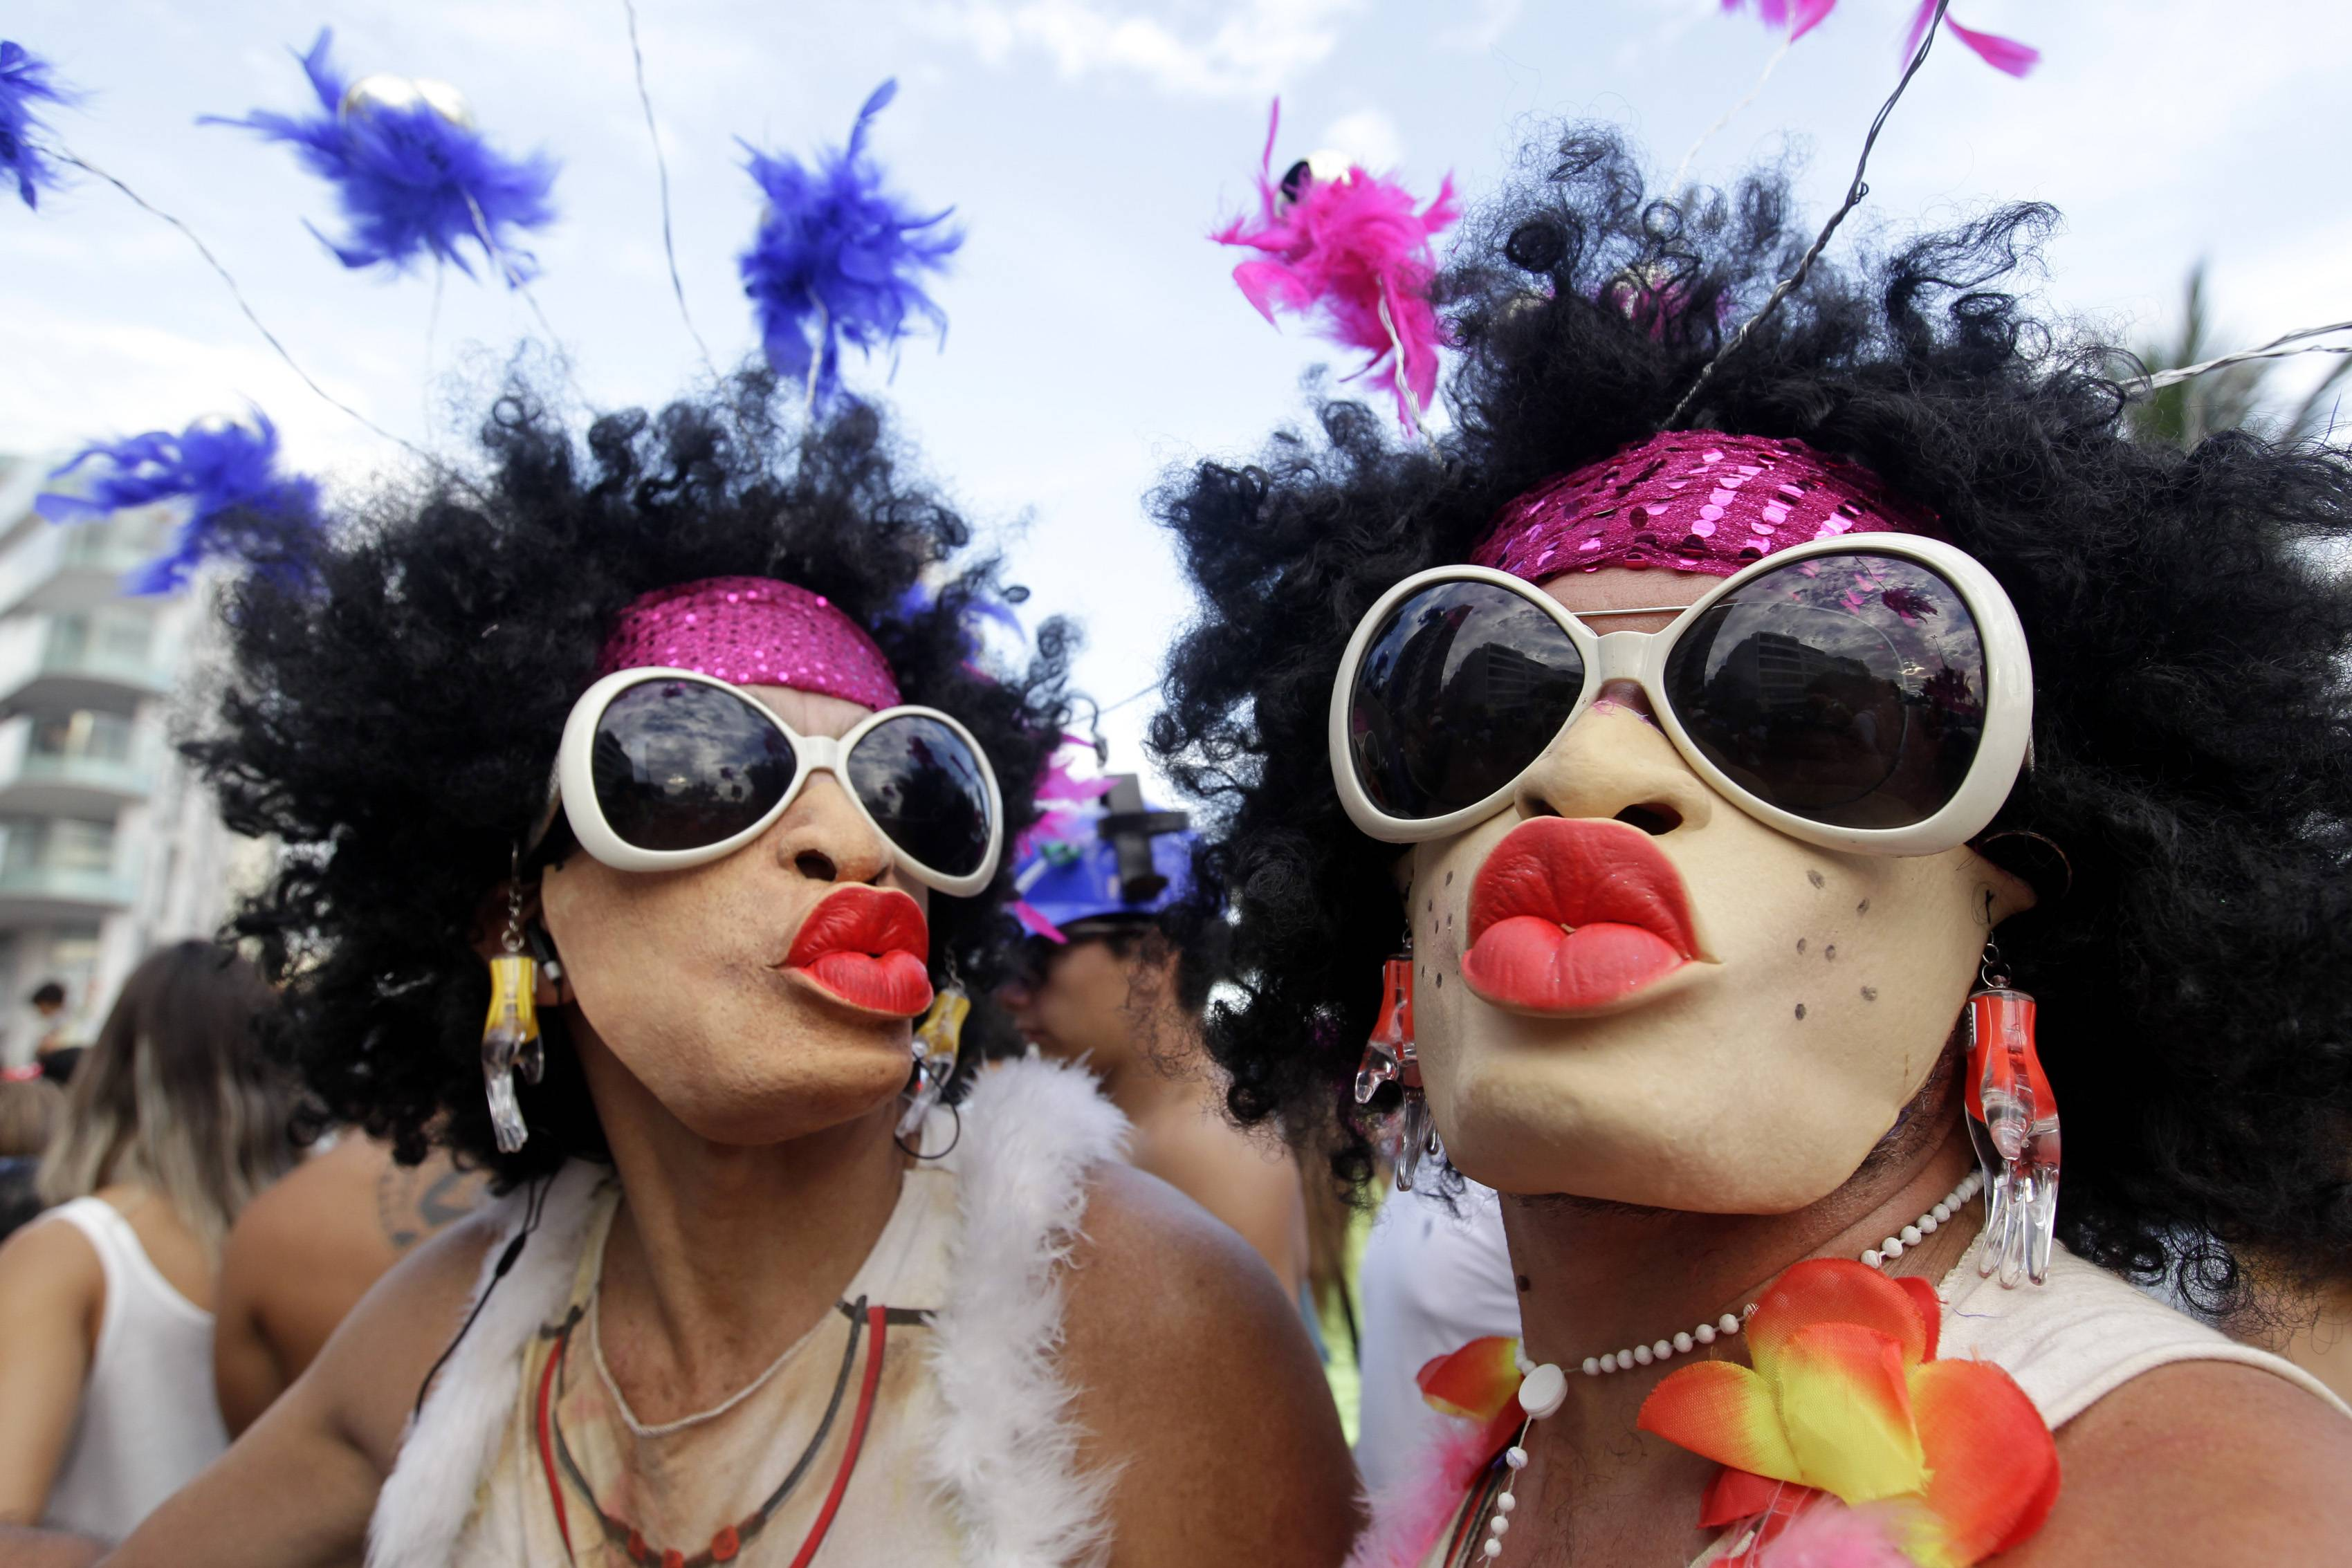 Mask-wearing revelers pose for a photo Saturday during the the Banda de Ipanema Carnival parade in Rio de Janeiro, Brazil.